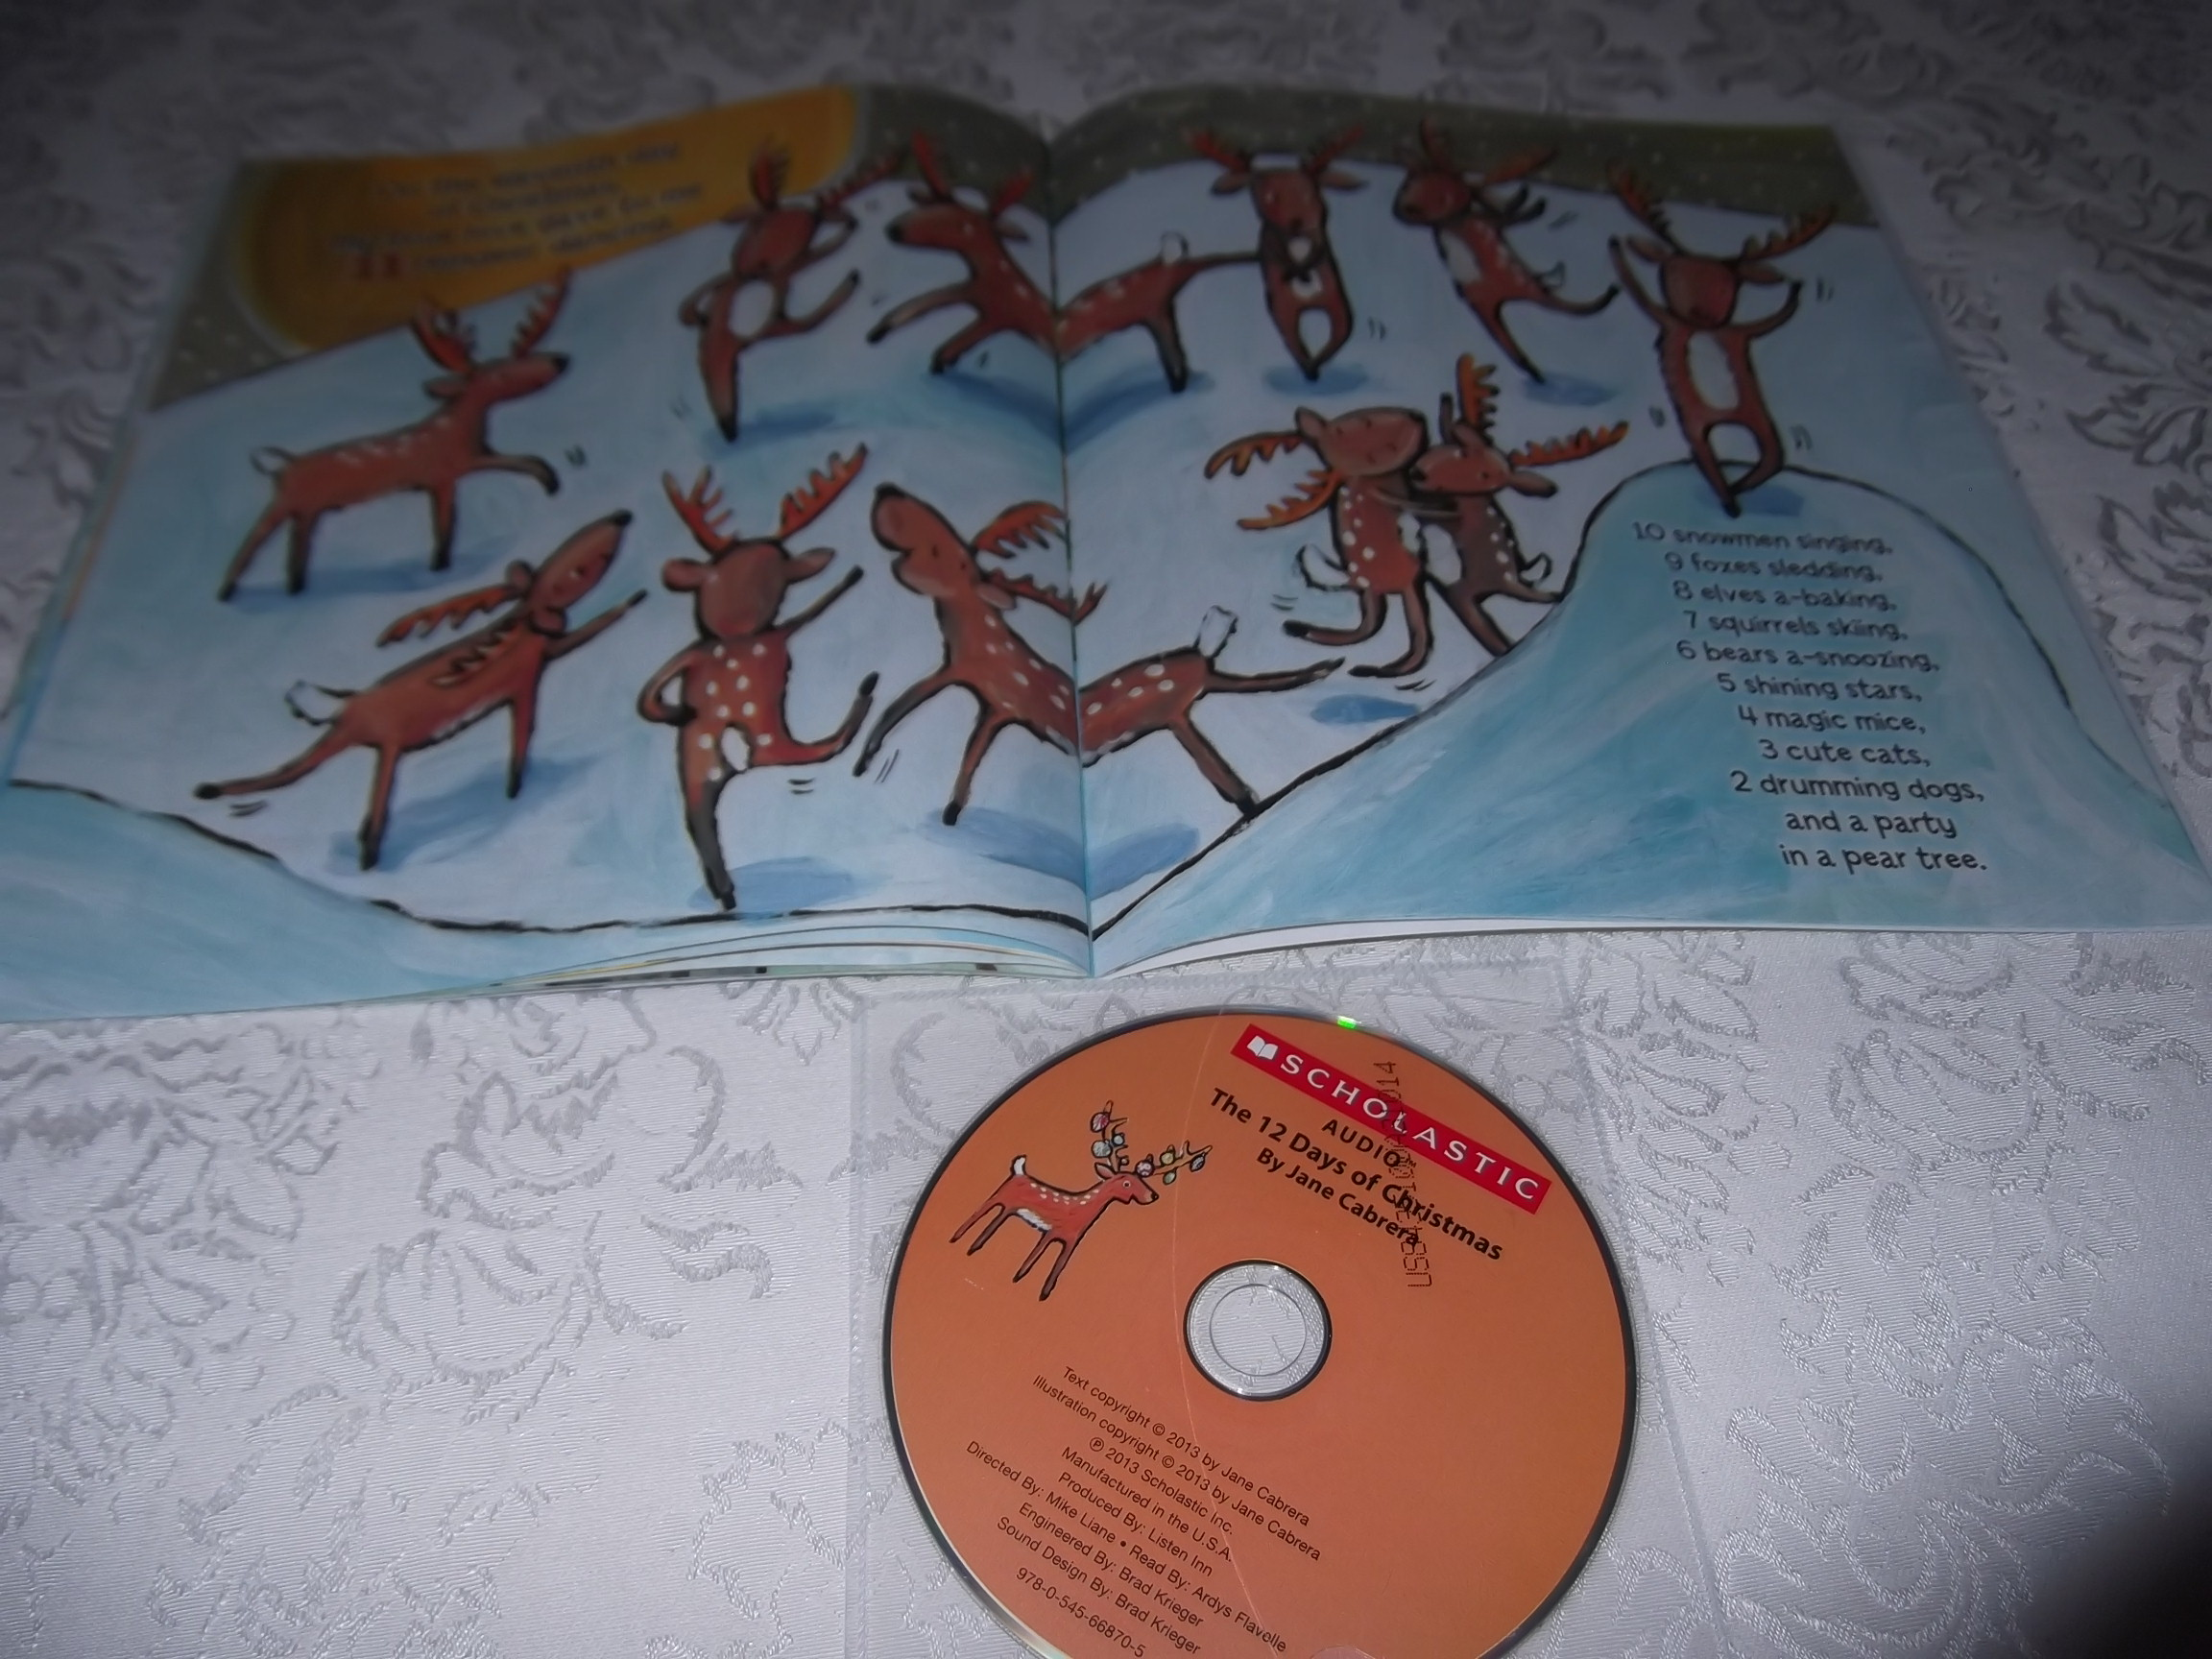 Image 4 of The 12 Days of CHRISTMAS Jane Cabrera Brand New Audio CD and Softcover